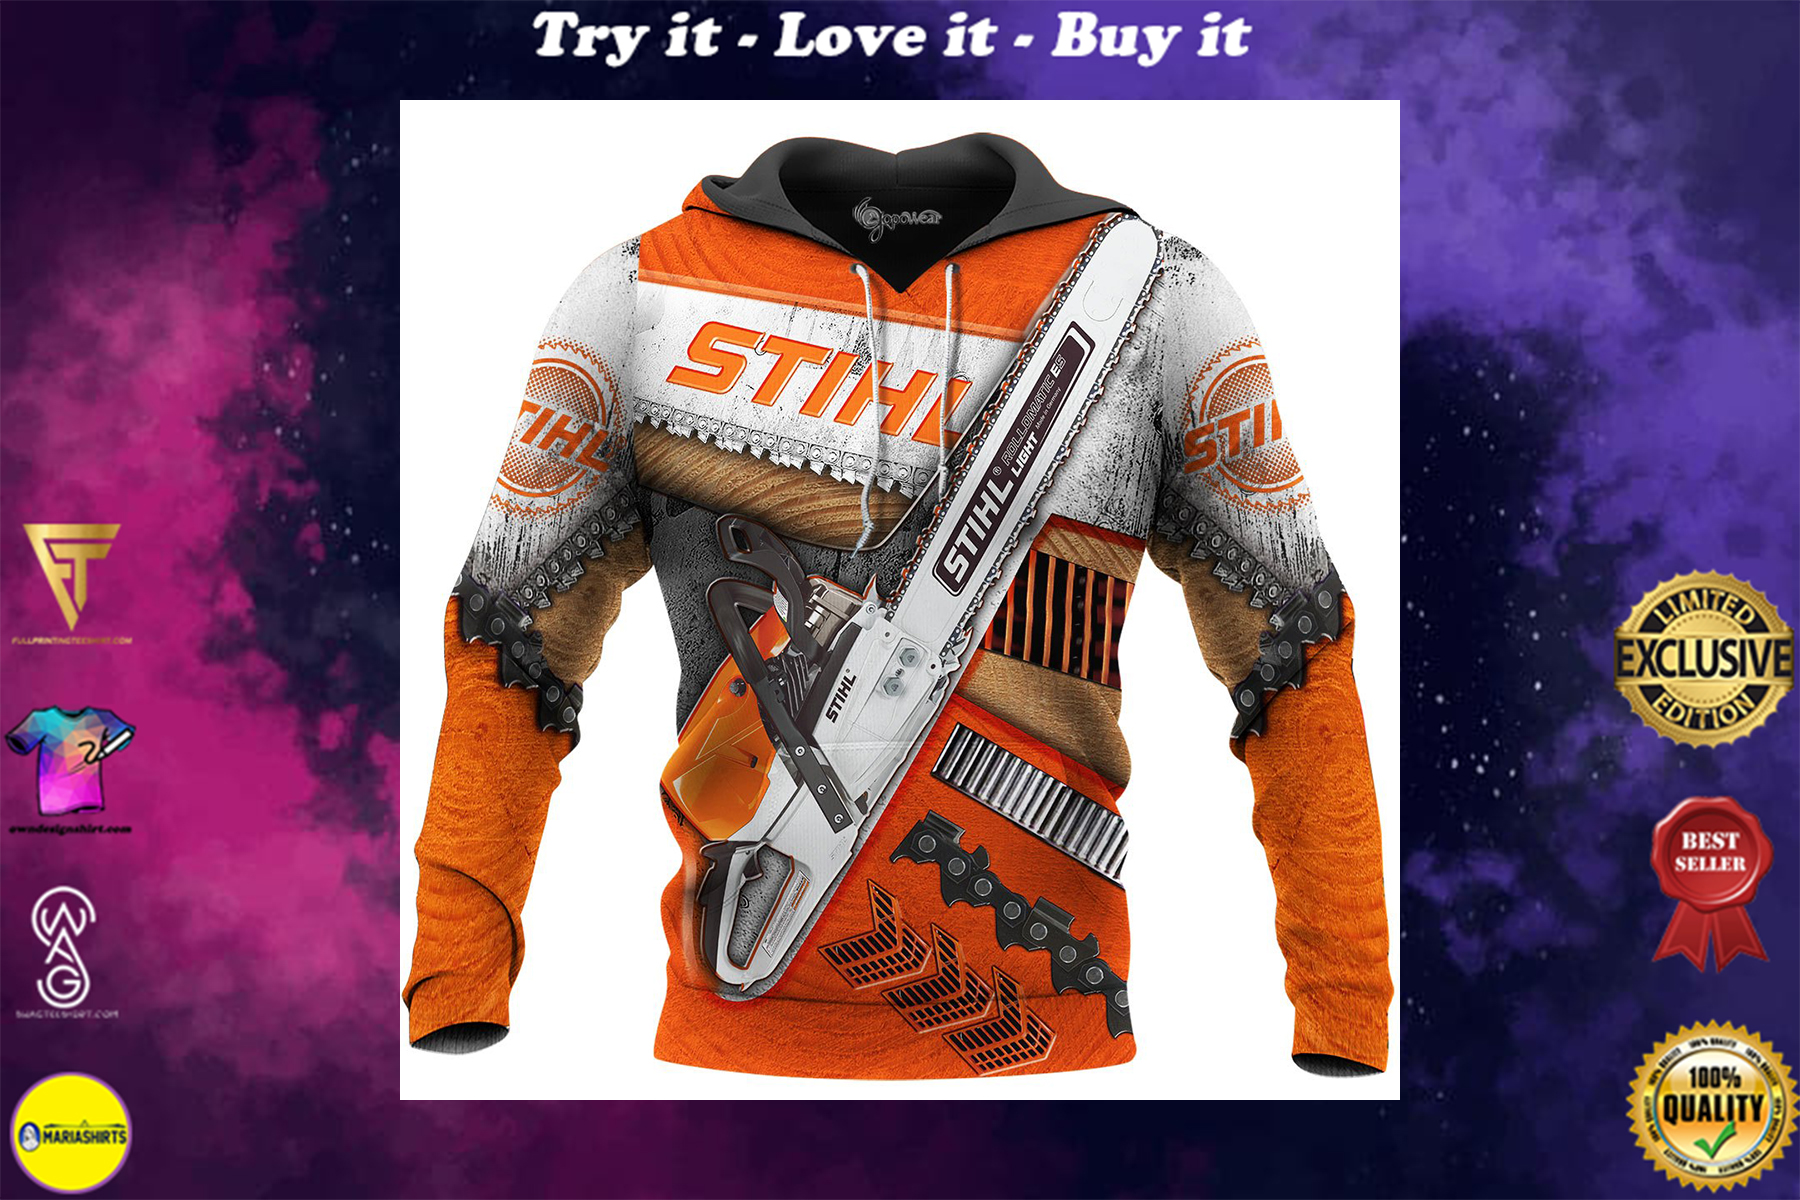 [special edition] beautiful stihl chainsaw full over printed shirt - maria